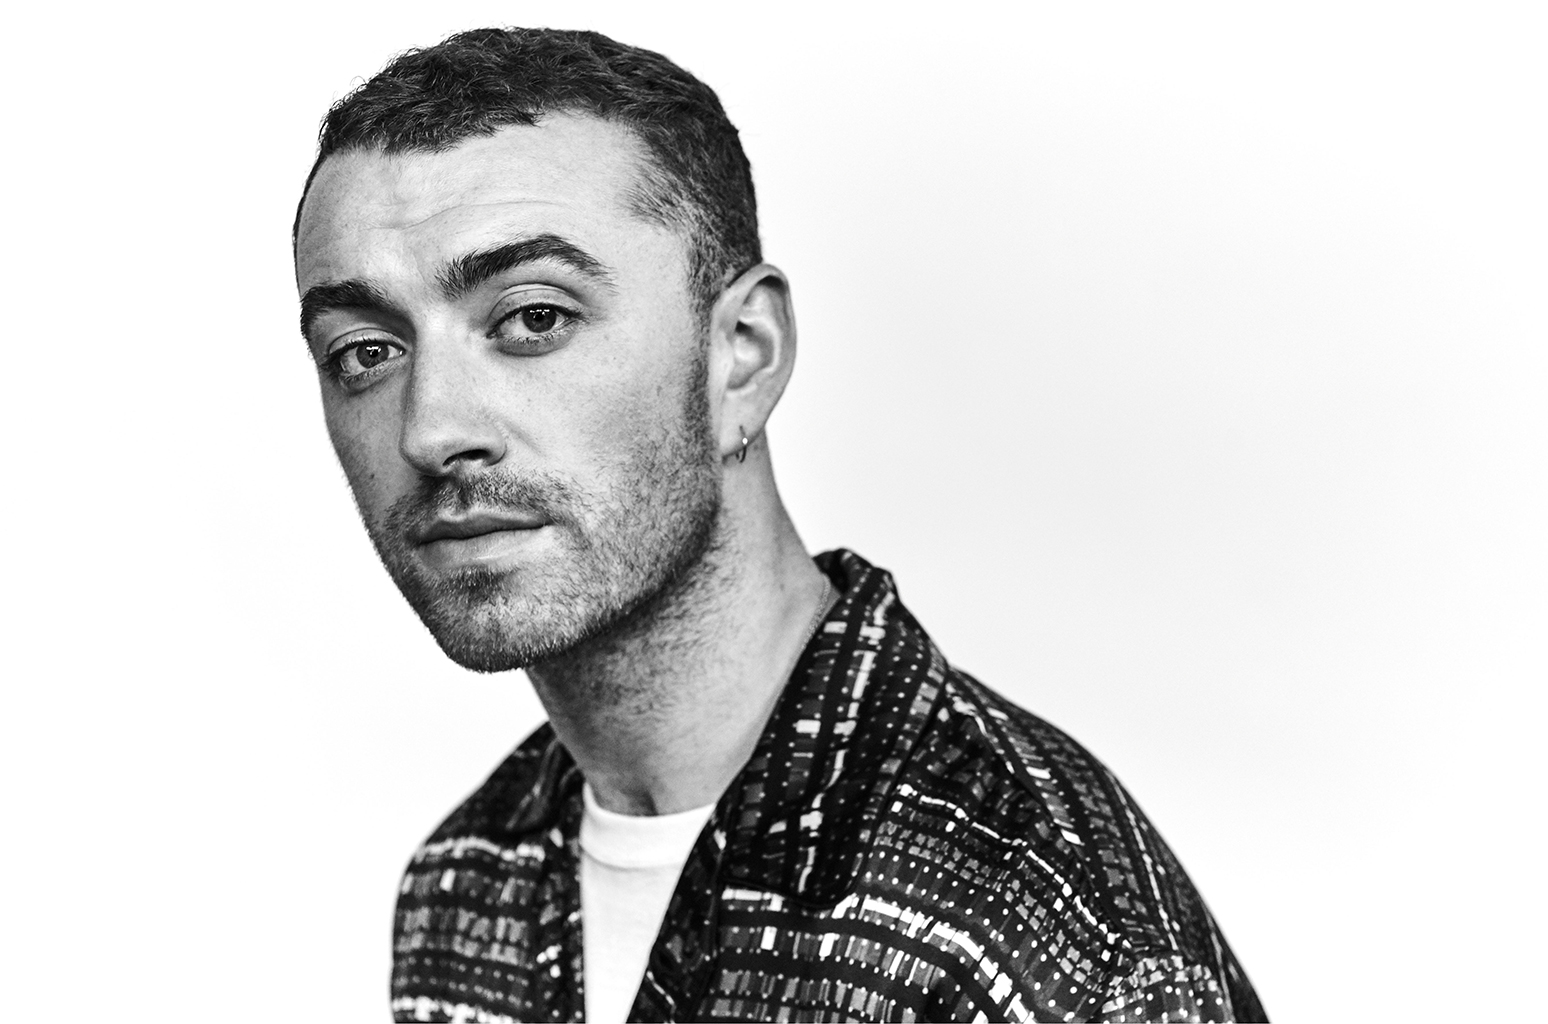 REVIEW: Sam Smith begins to see the light on 'The Thrill of it All'